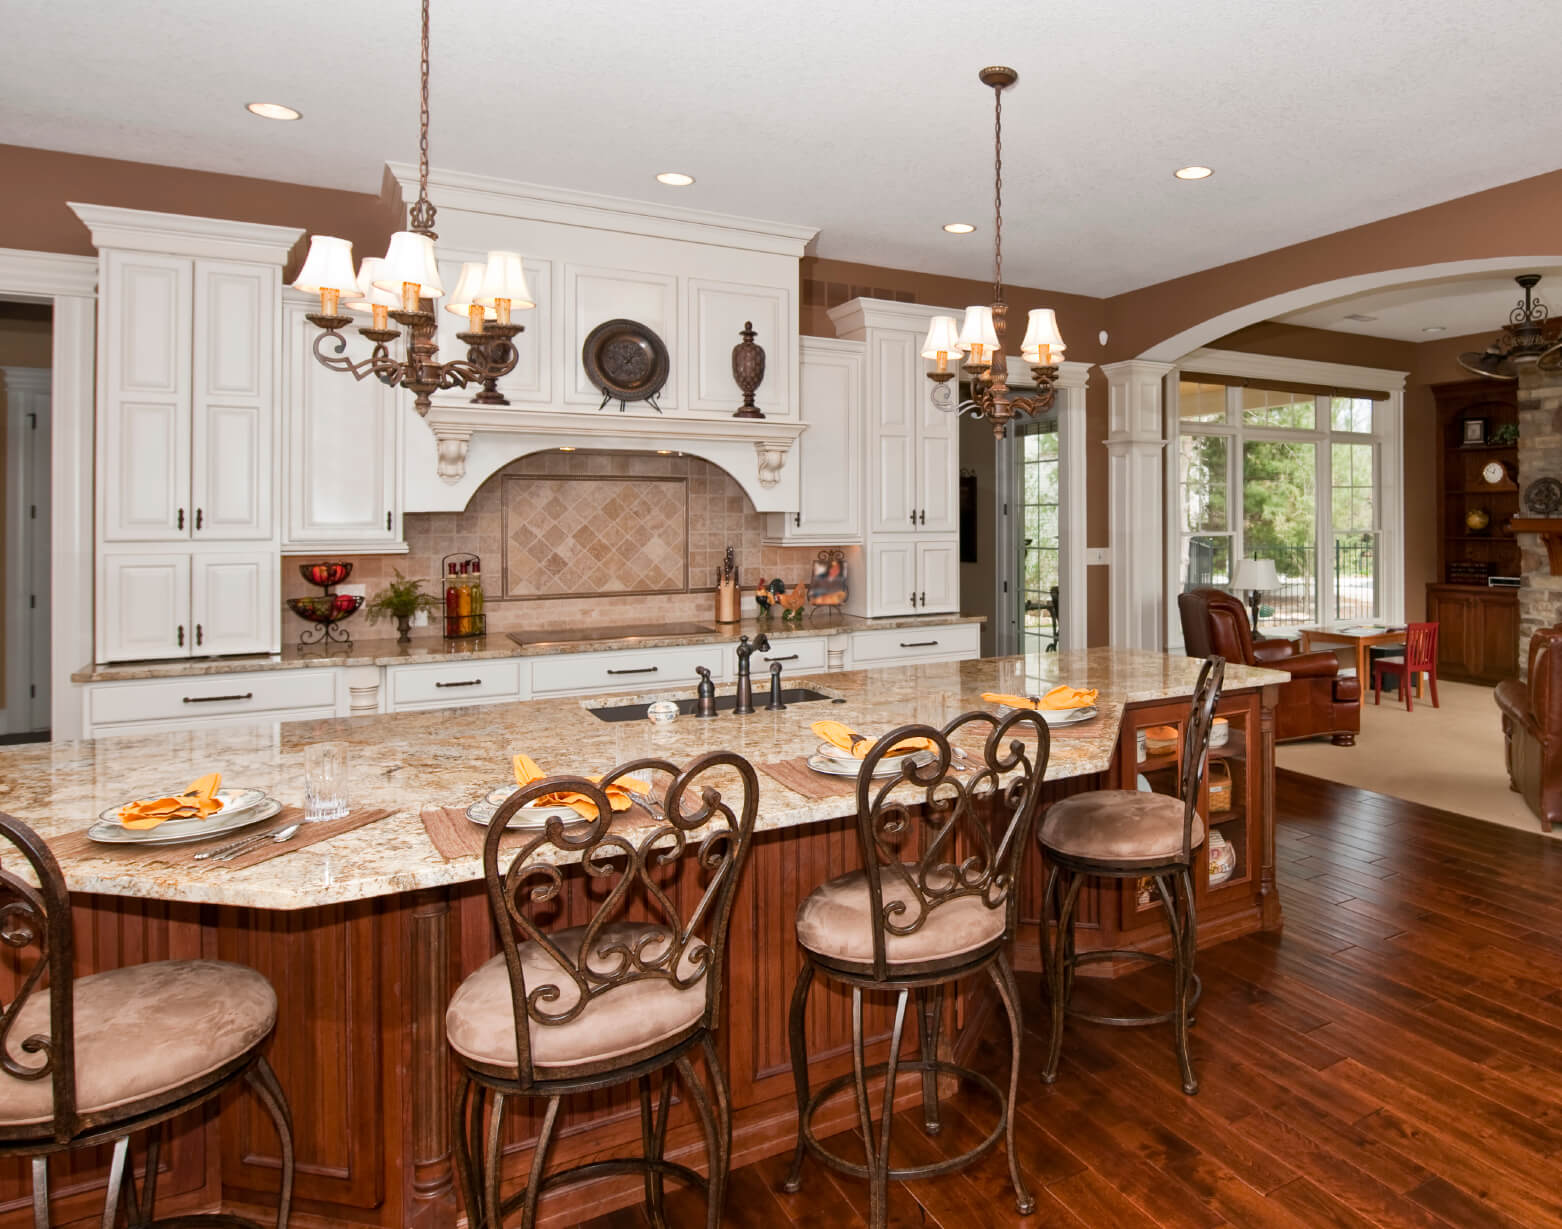 Comfortable Open Kitchen Features Immense Island Done Wood Kitchen Island Ideas Large Custom Built Kitchen Islands Large Custom Made Kitchen Islands kitchen Large Custom Kitchen Islands